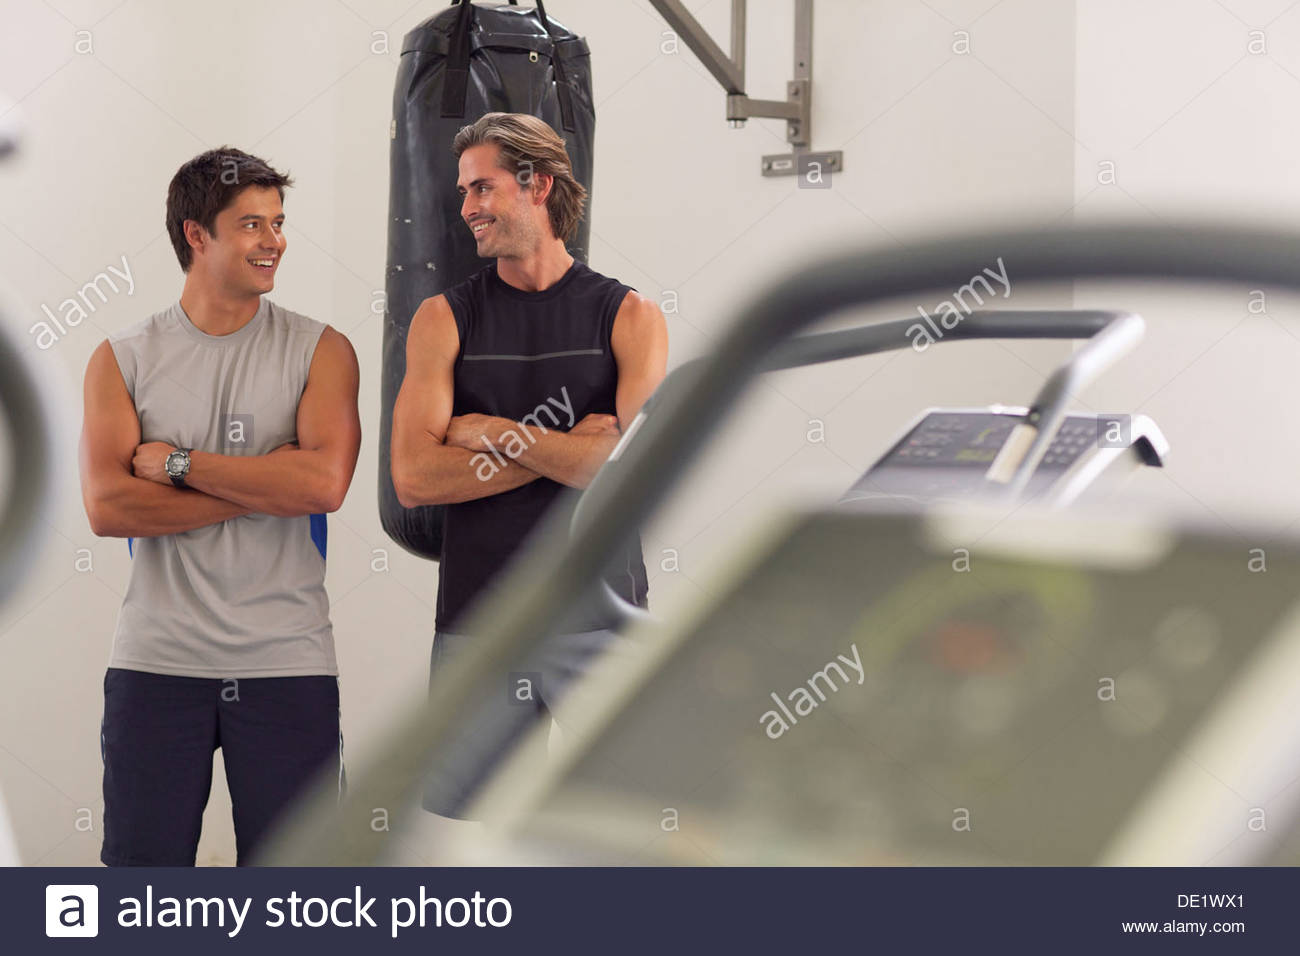 Portrait of smiling men avec les bras croisés en face de punching bag Photo Stock